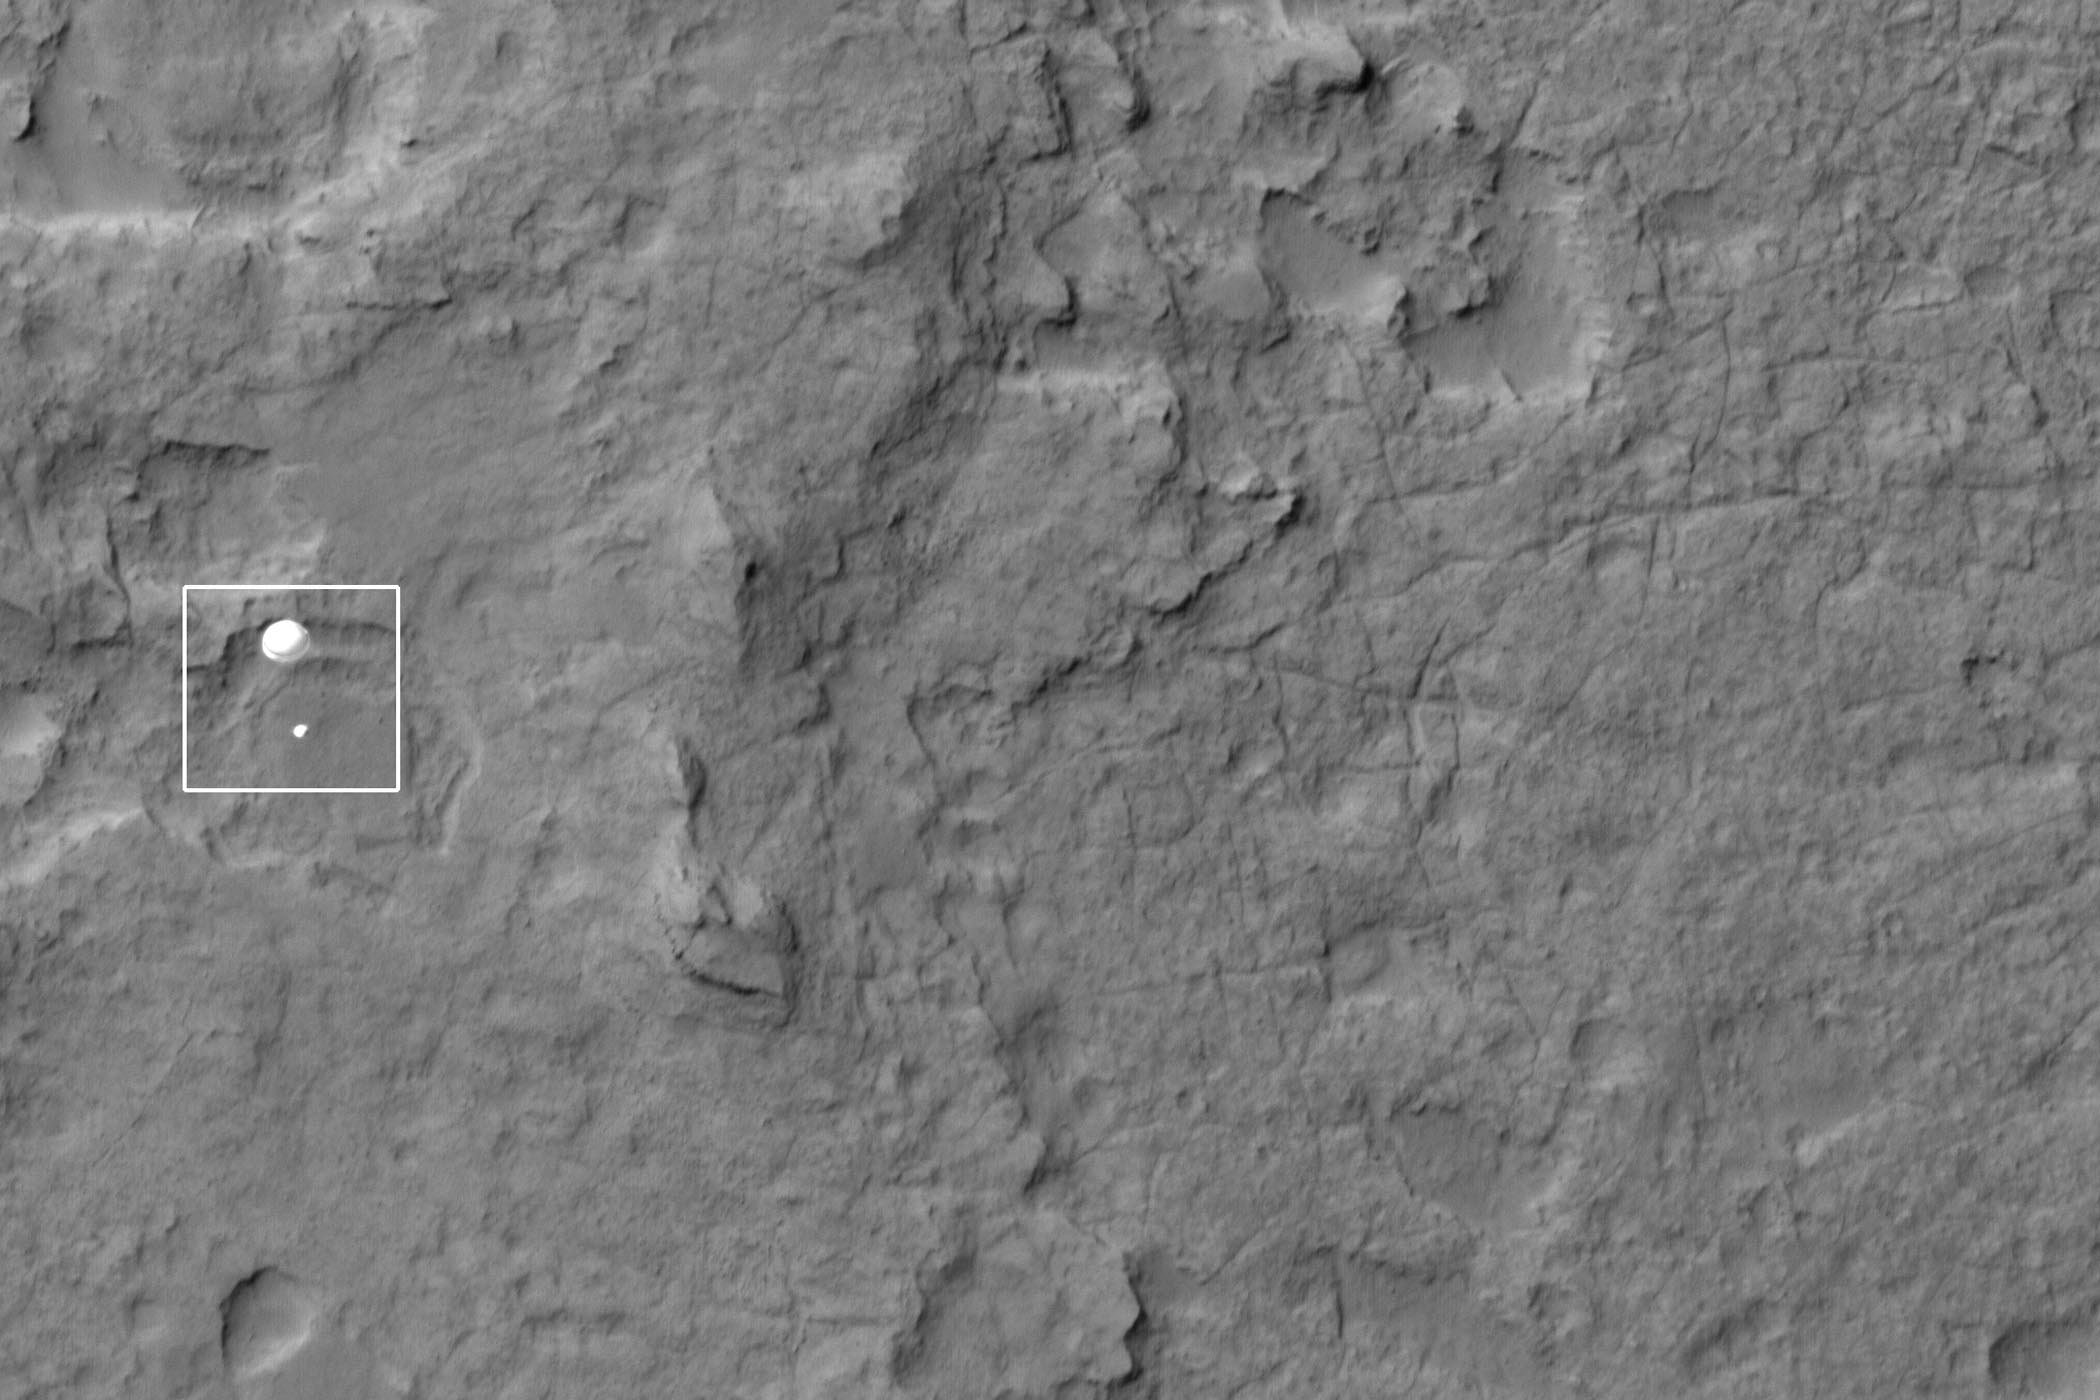 NASA's Curiosity rover and its parachute are seen by NASA's Mars Reconnaissance Orbiter as Curiosity descends to the surface around 10:32 p.m. PDT, Aug. 5, or 1:32 a.m. EDT, Aug. 6, 2012.  The rover is equipped with a nuclear-powered lab capable of vaporizing rocks and ingesting soil, measuring habitability, and whether Mars ever had an environment able to support life.